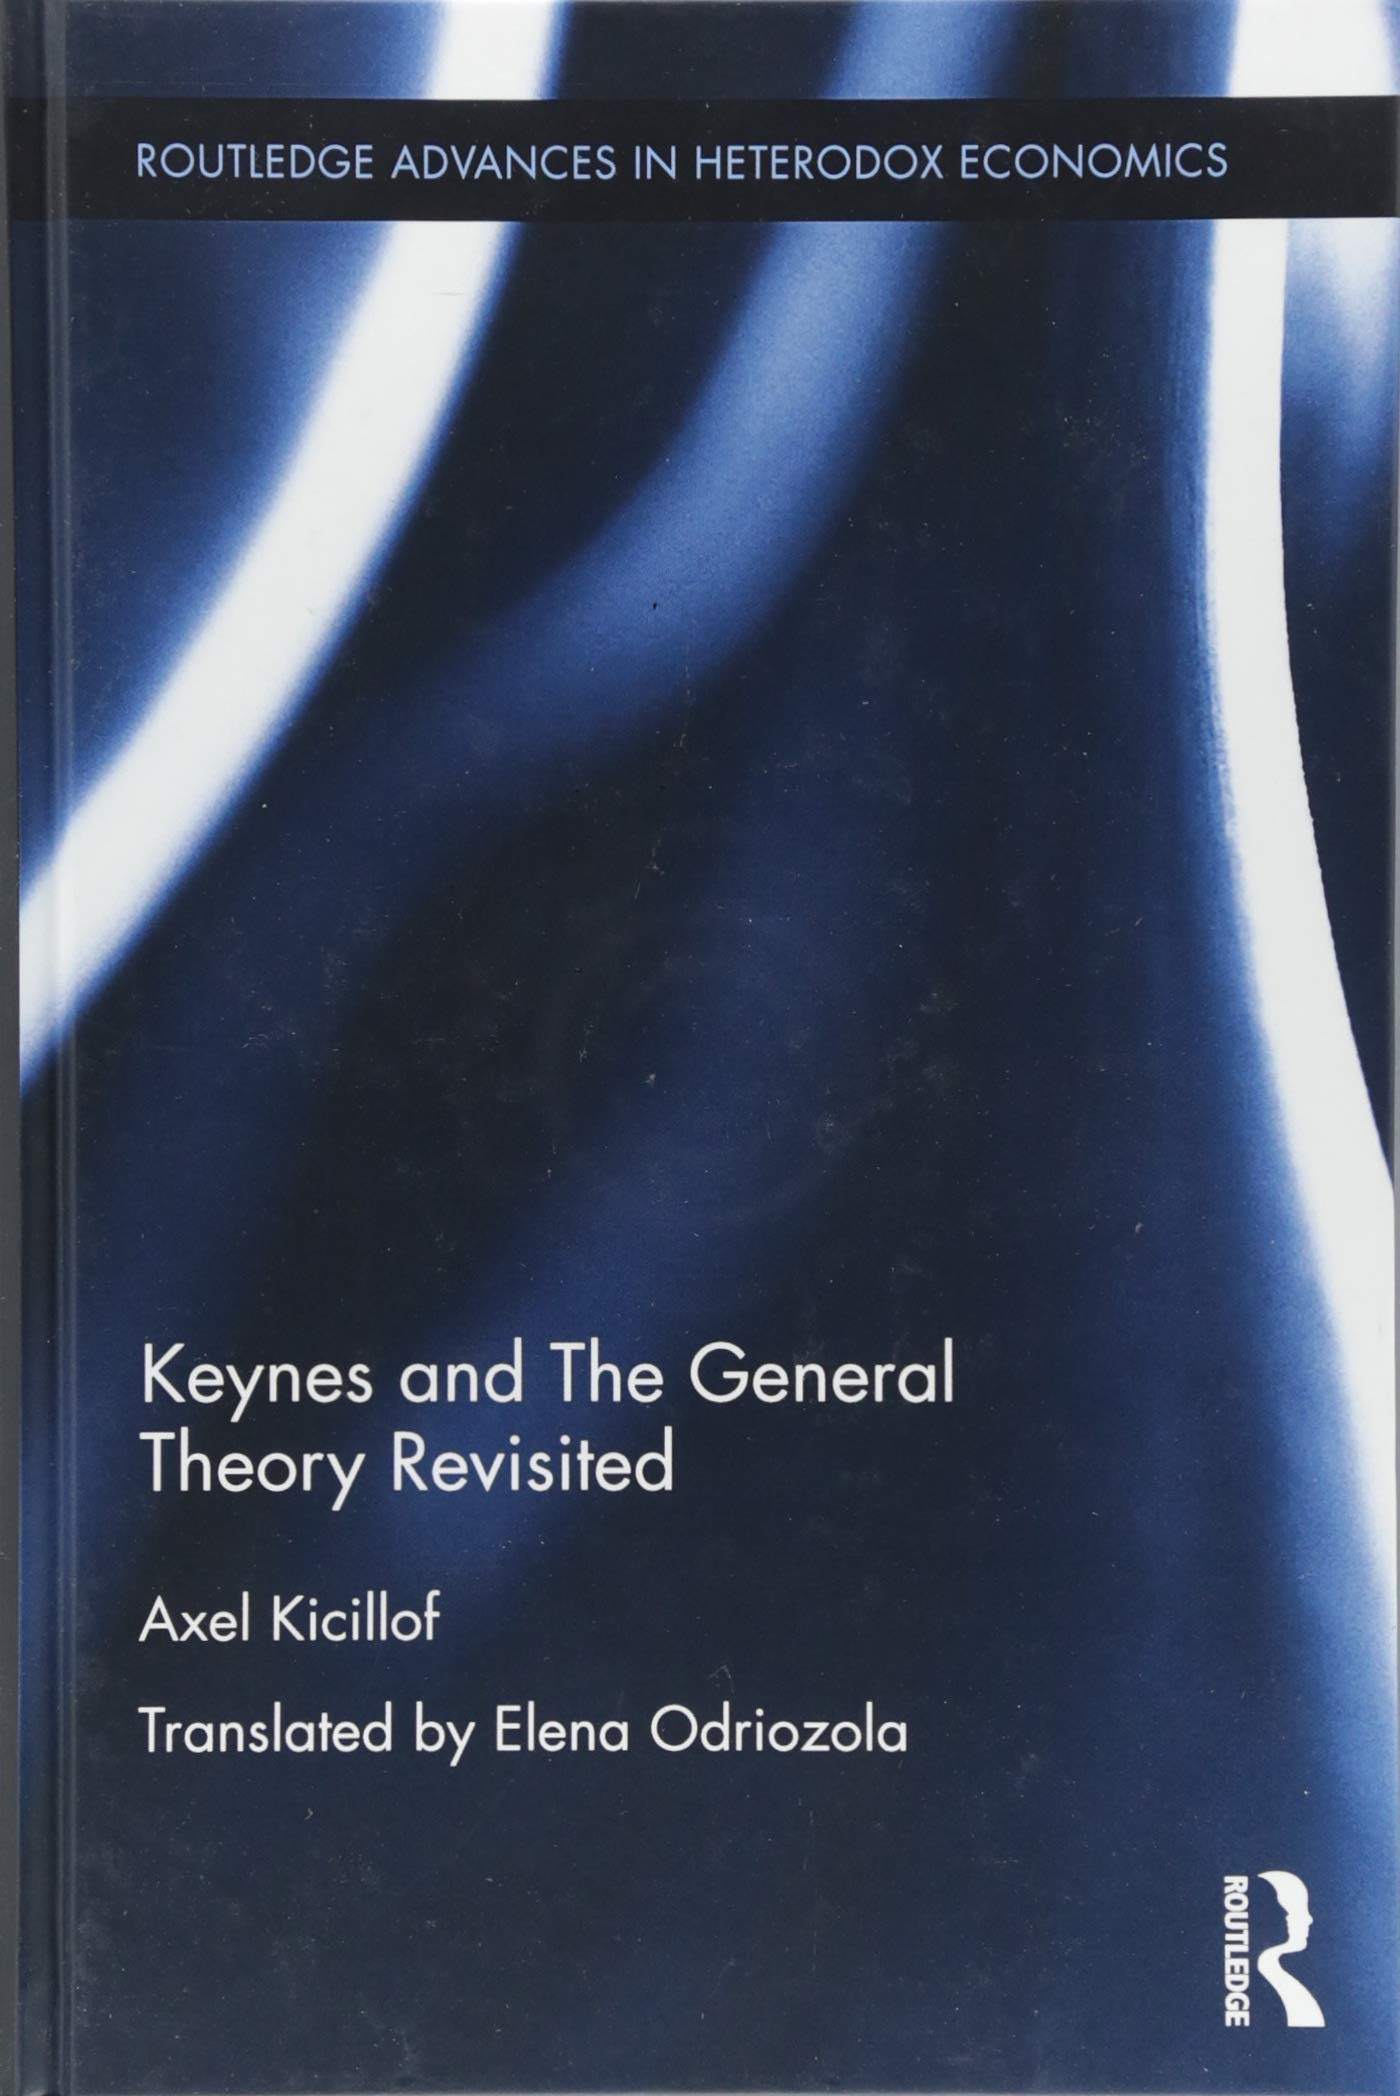 Keynes and The General Theory Revisited: 36 Routledge Advances in ...